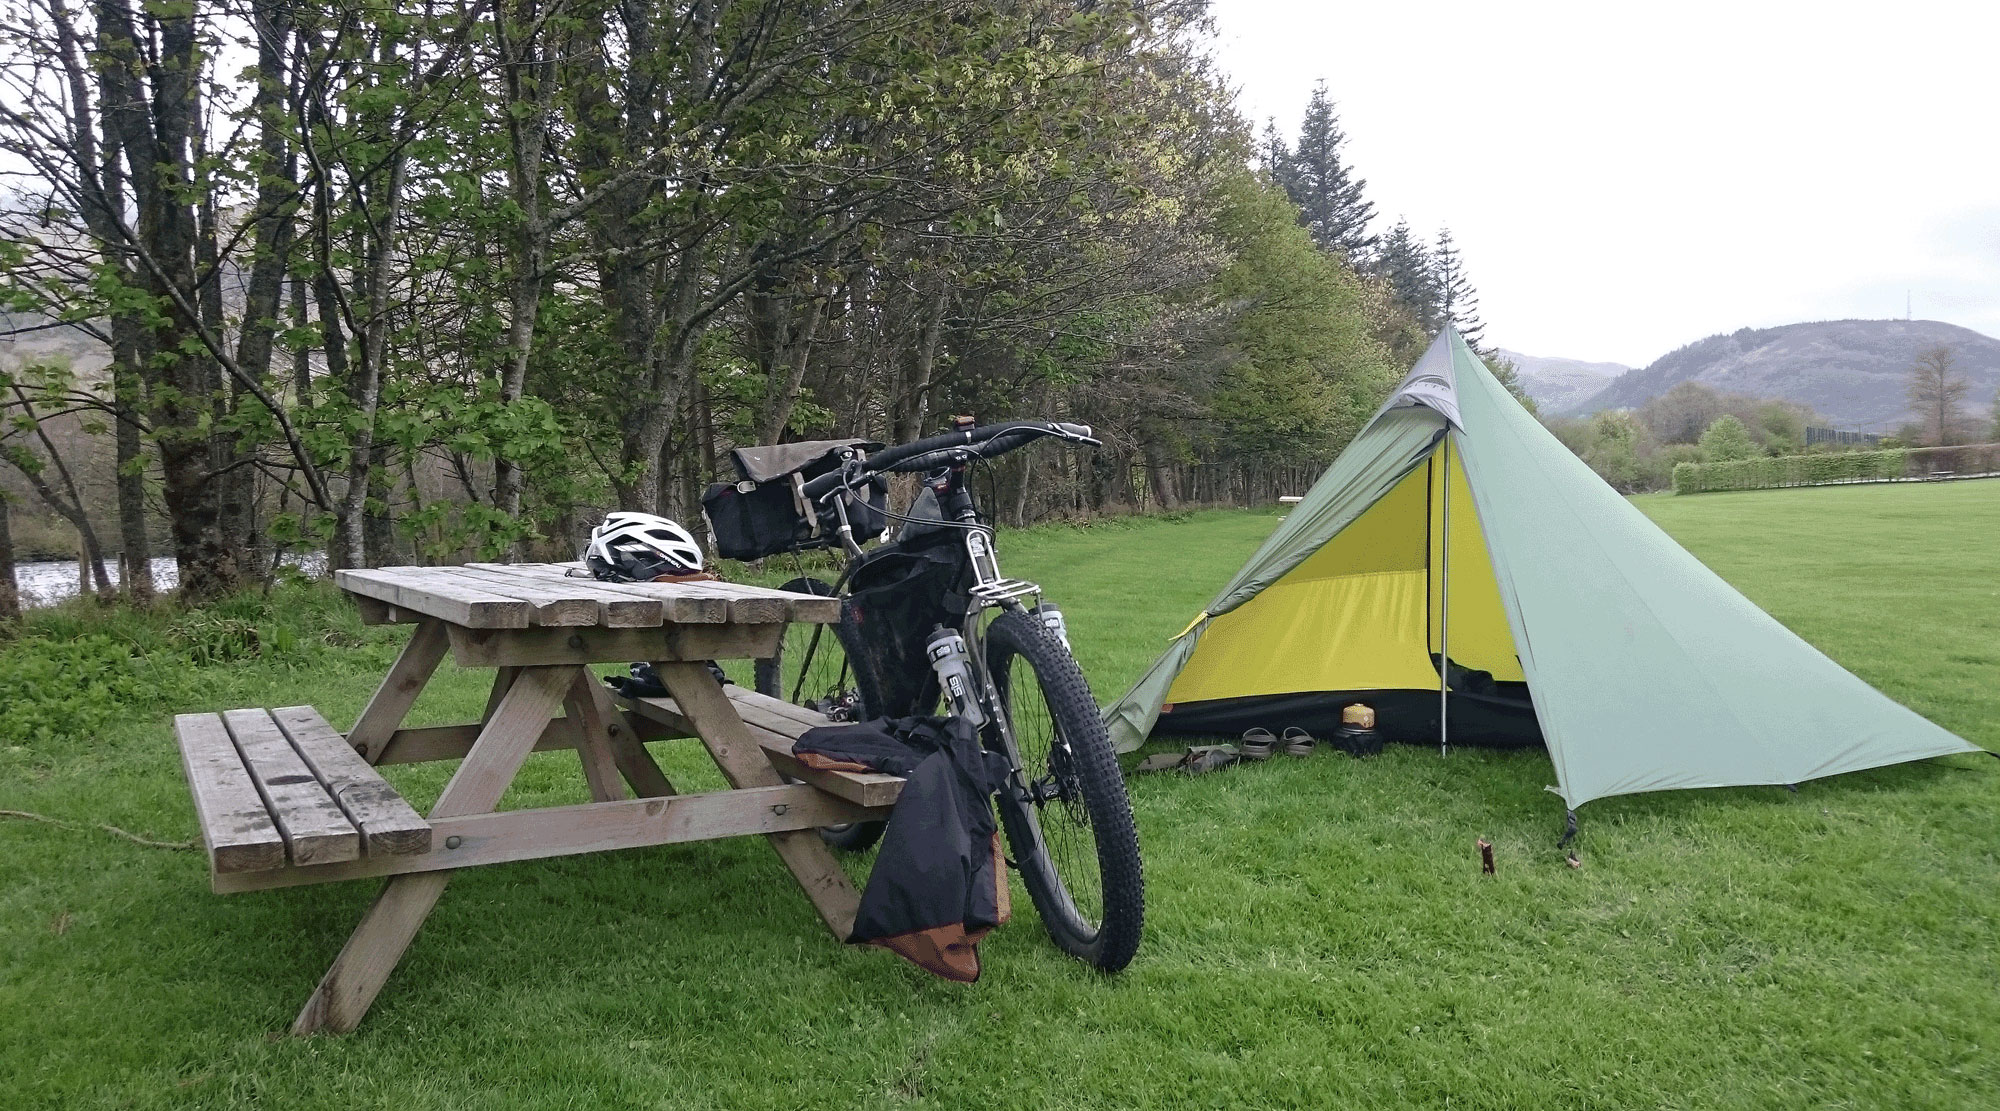 Lochy Holiday Park Campsite It Rained And